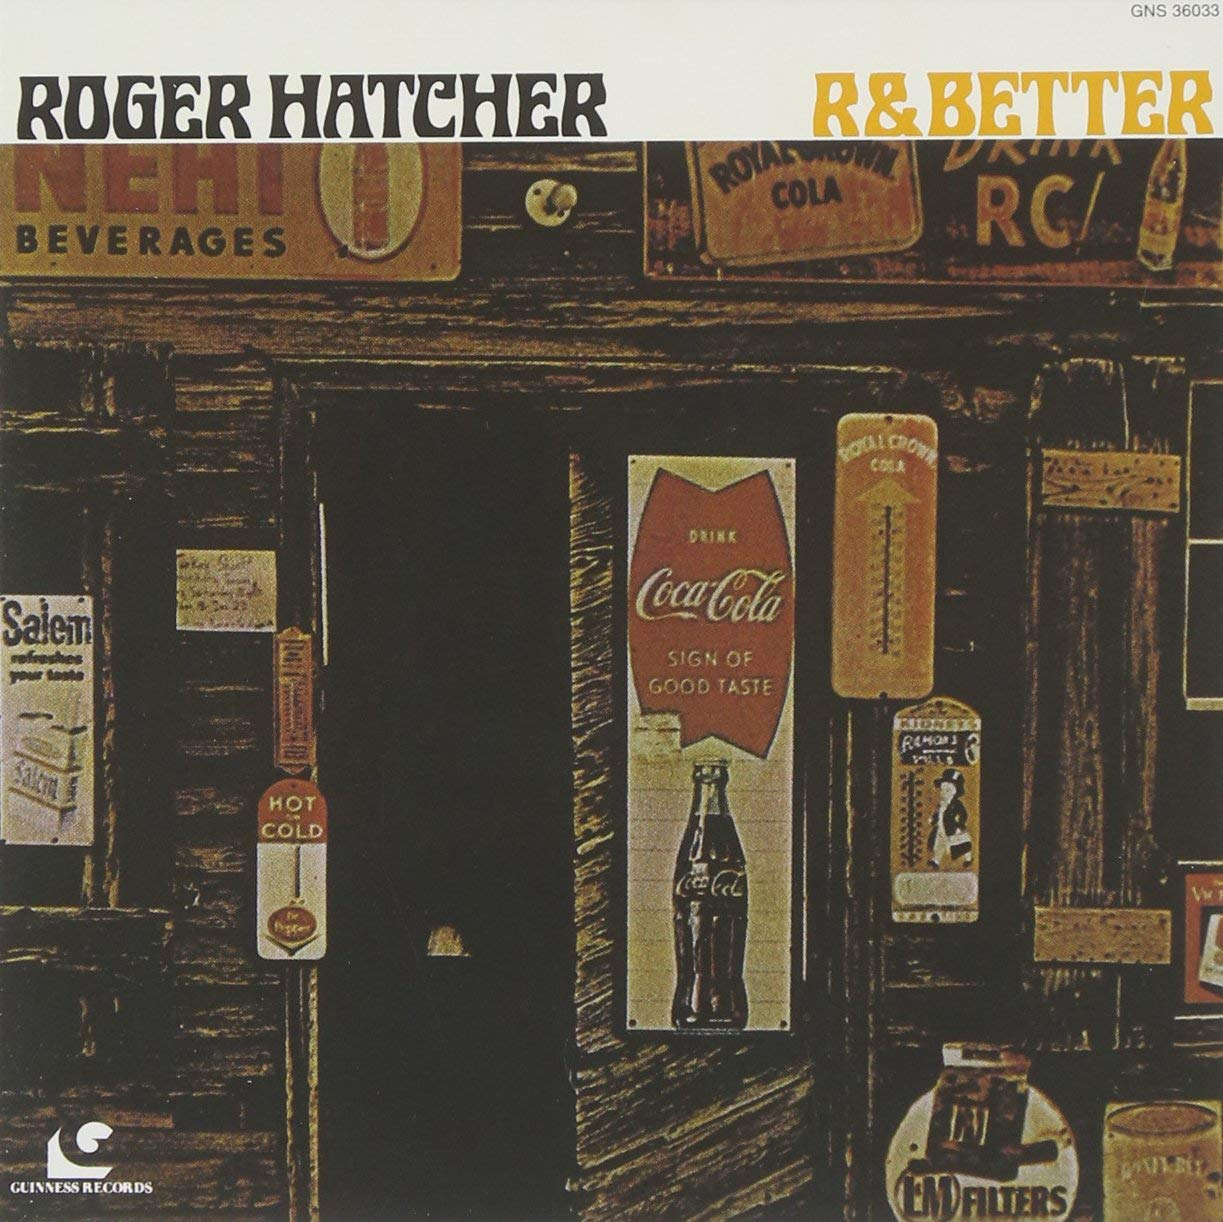 Image of R & Better / Roger Hatcher